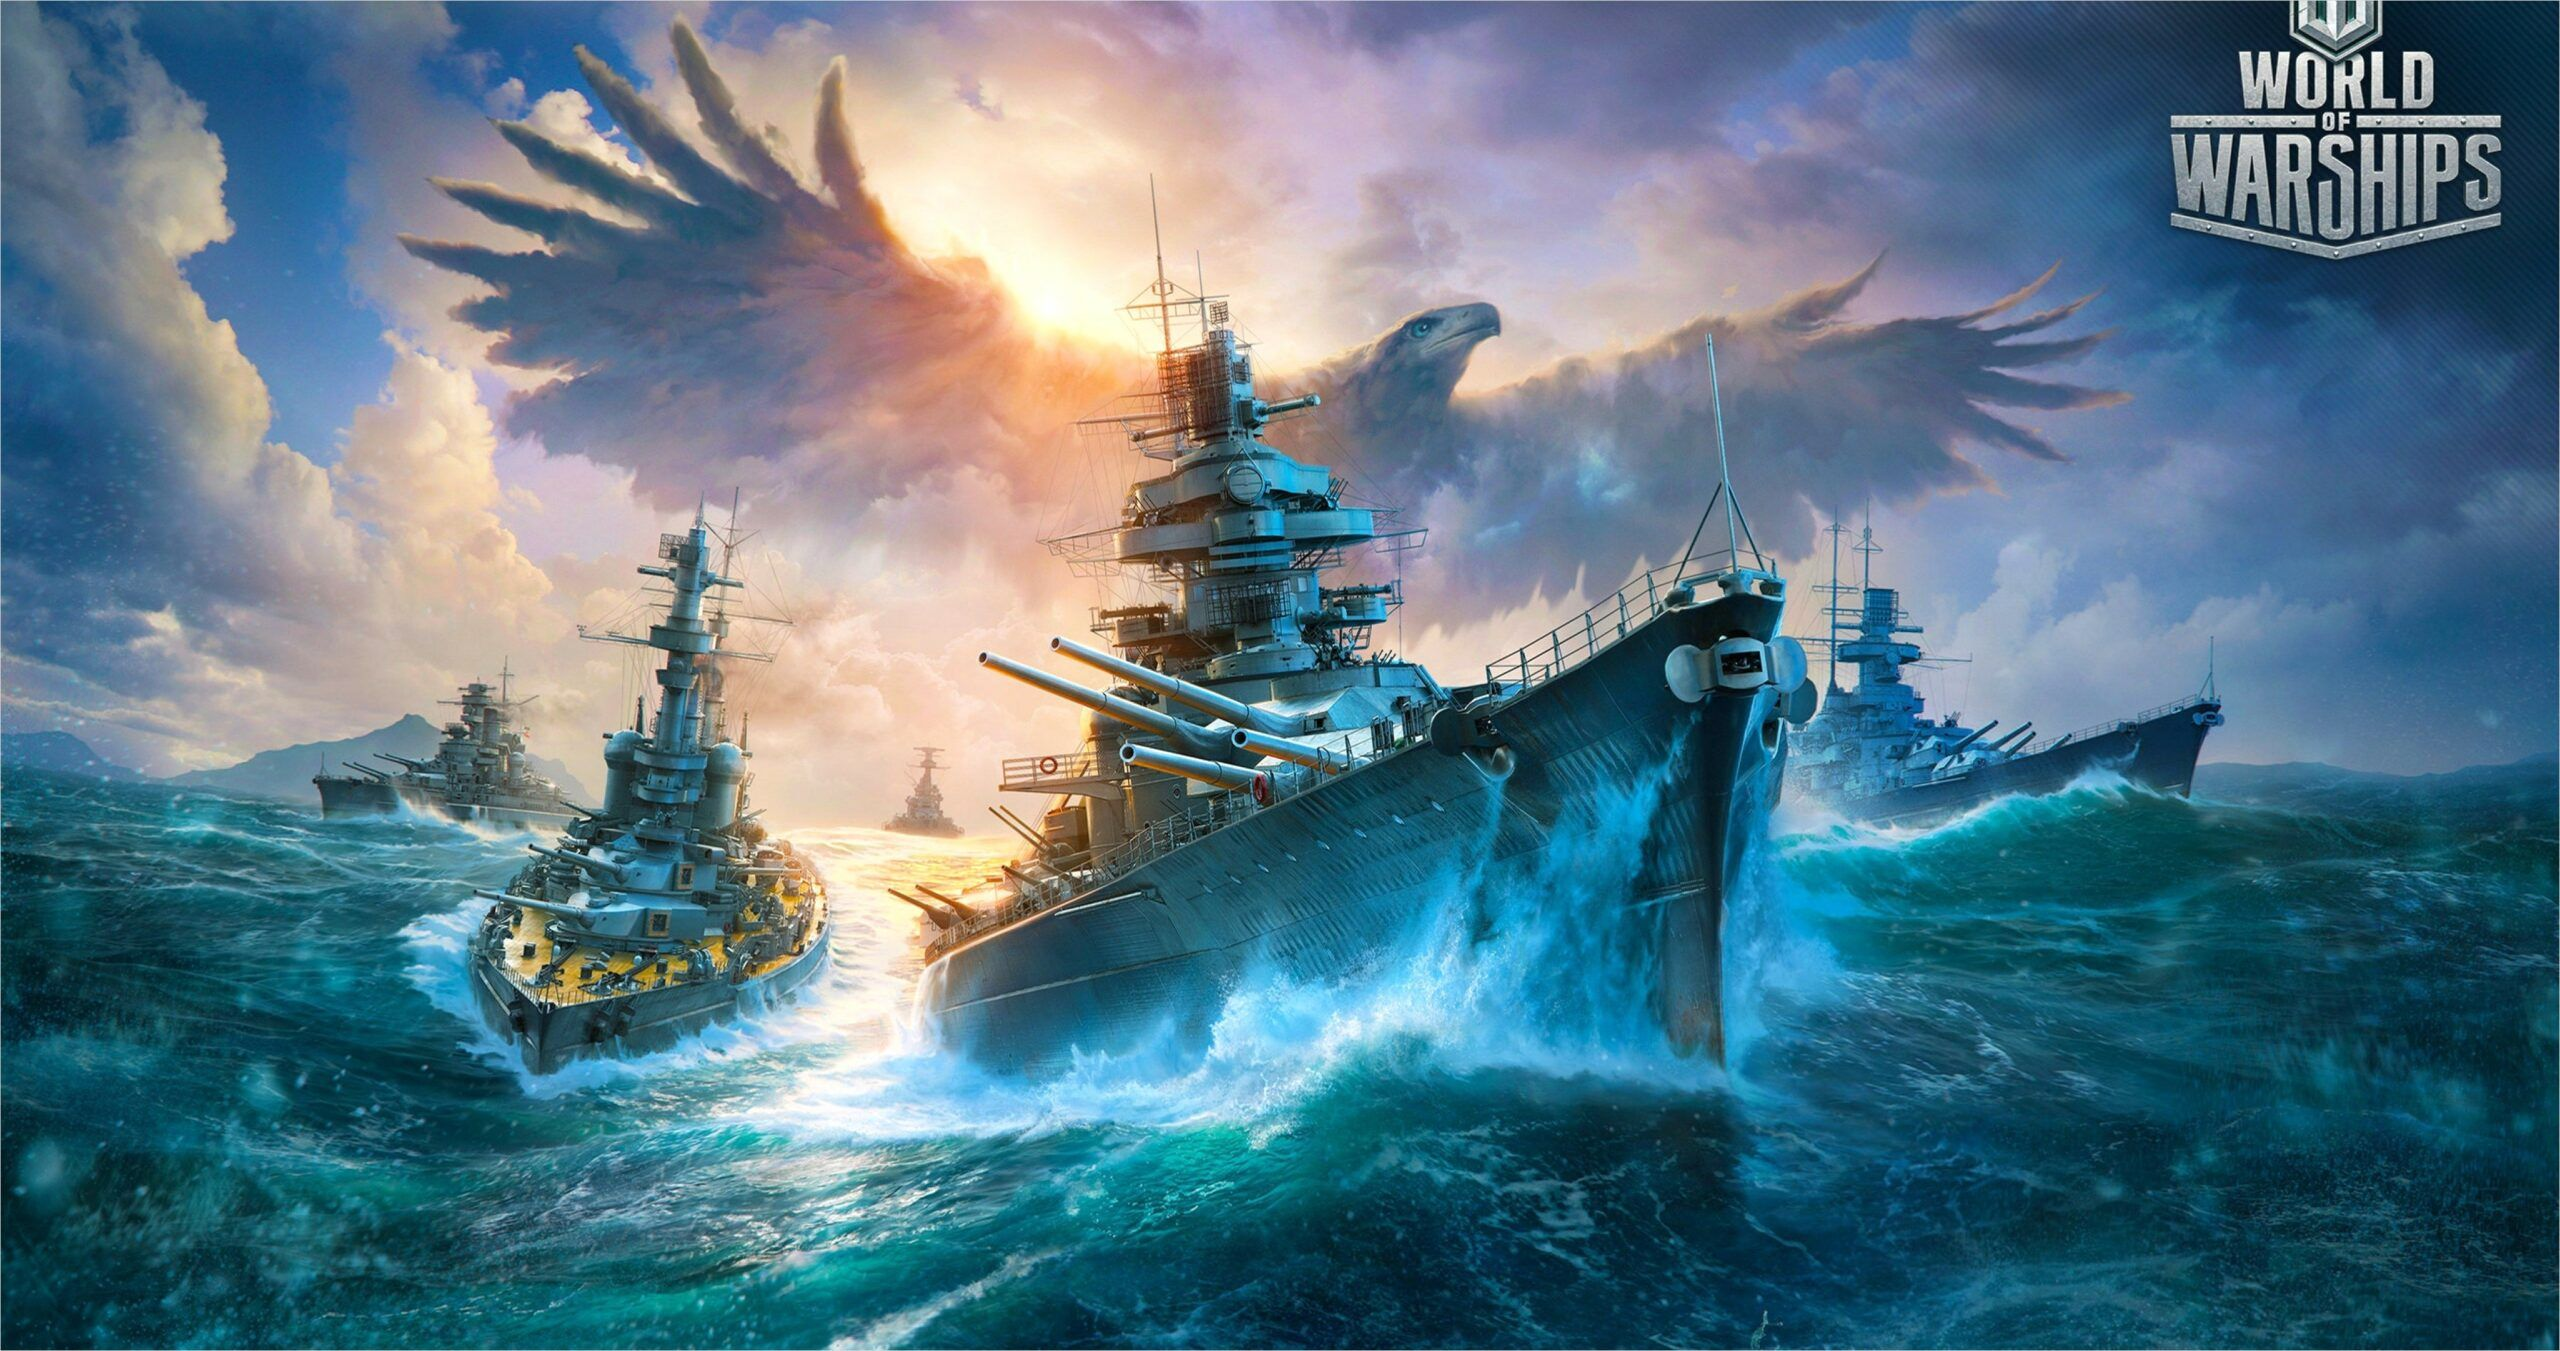 Pin By Prajwal Patil On World Of Warships Wallpaper In 2020